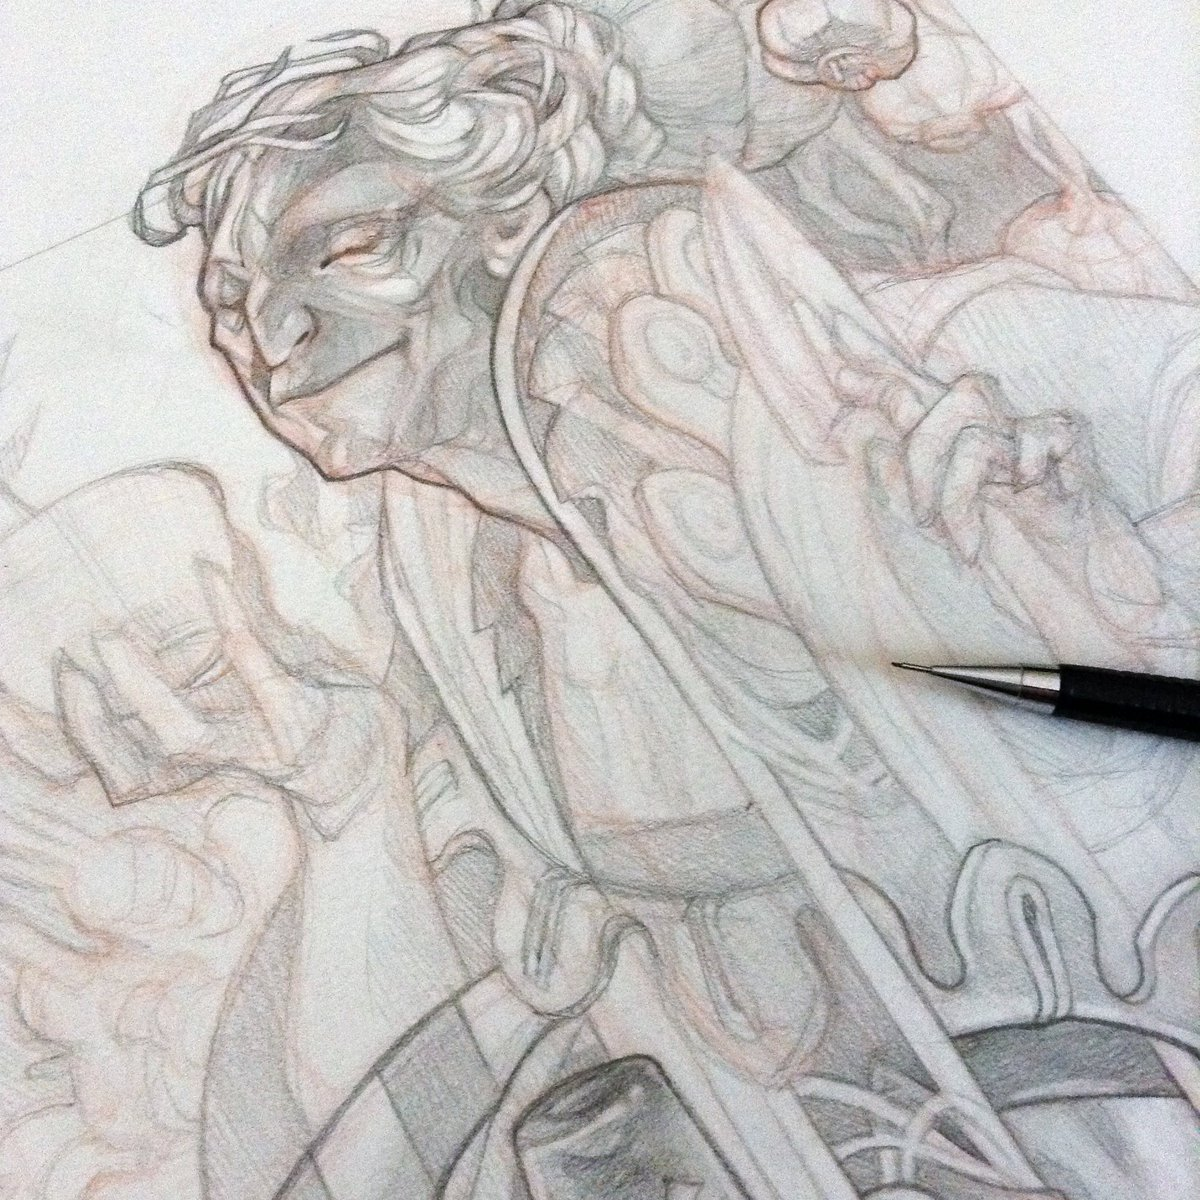 Wylie beckert on twitter from the process tutorial for the queen of spades https t co jzqra8anfp pencil drawing over rough col erase